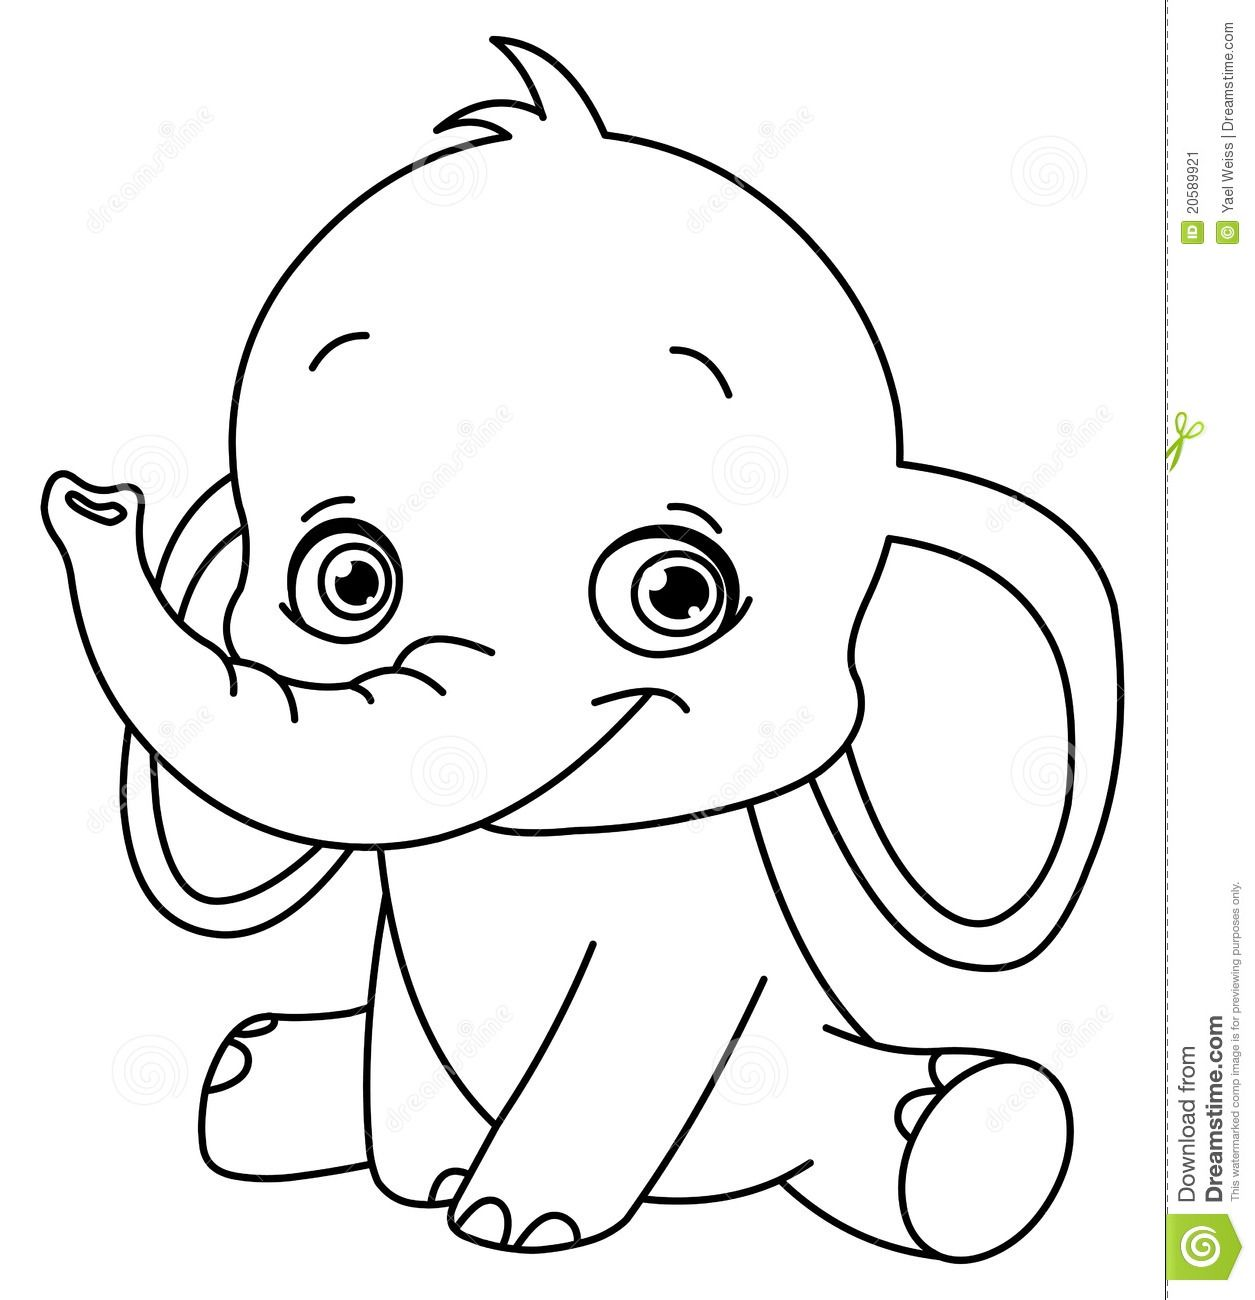 Outlined Baby Elephant 20589921 Jpg 1255 1300 Elephant Colouring Pictures Elephant Coloring Page Elephant Outline